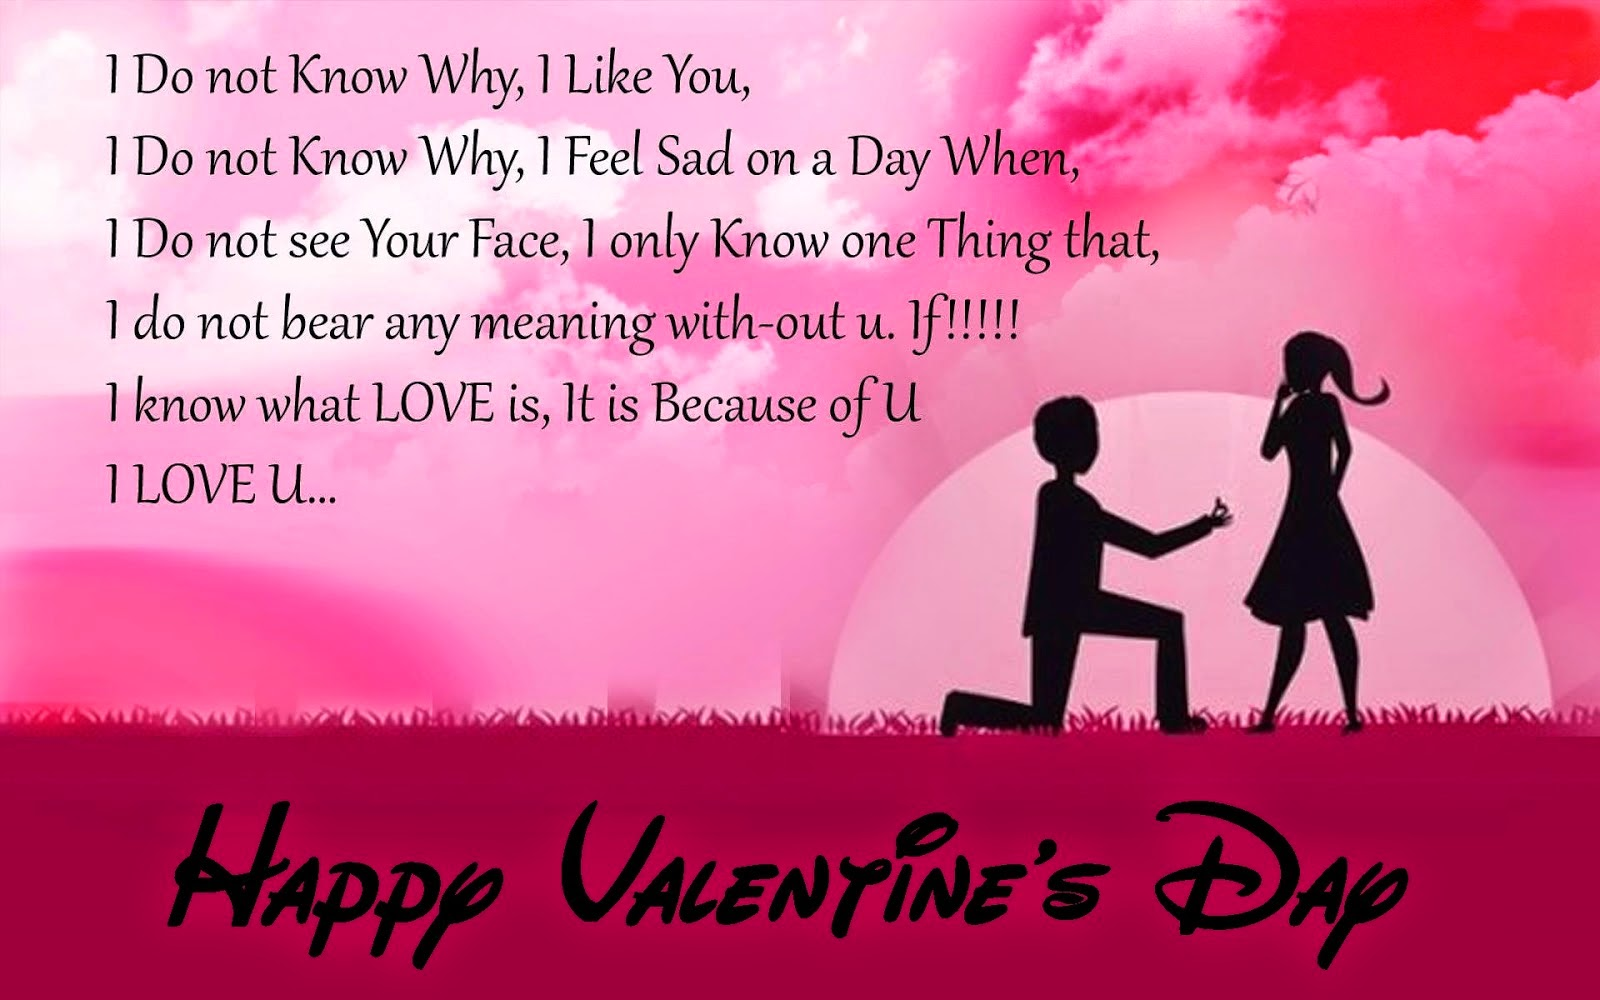 Valentine's Day 2018 Wishes